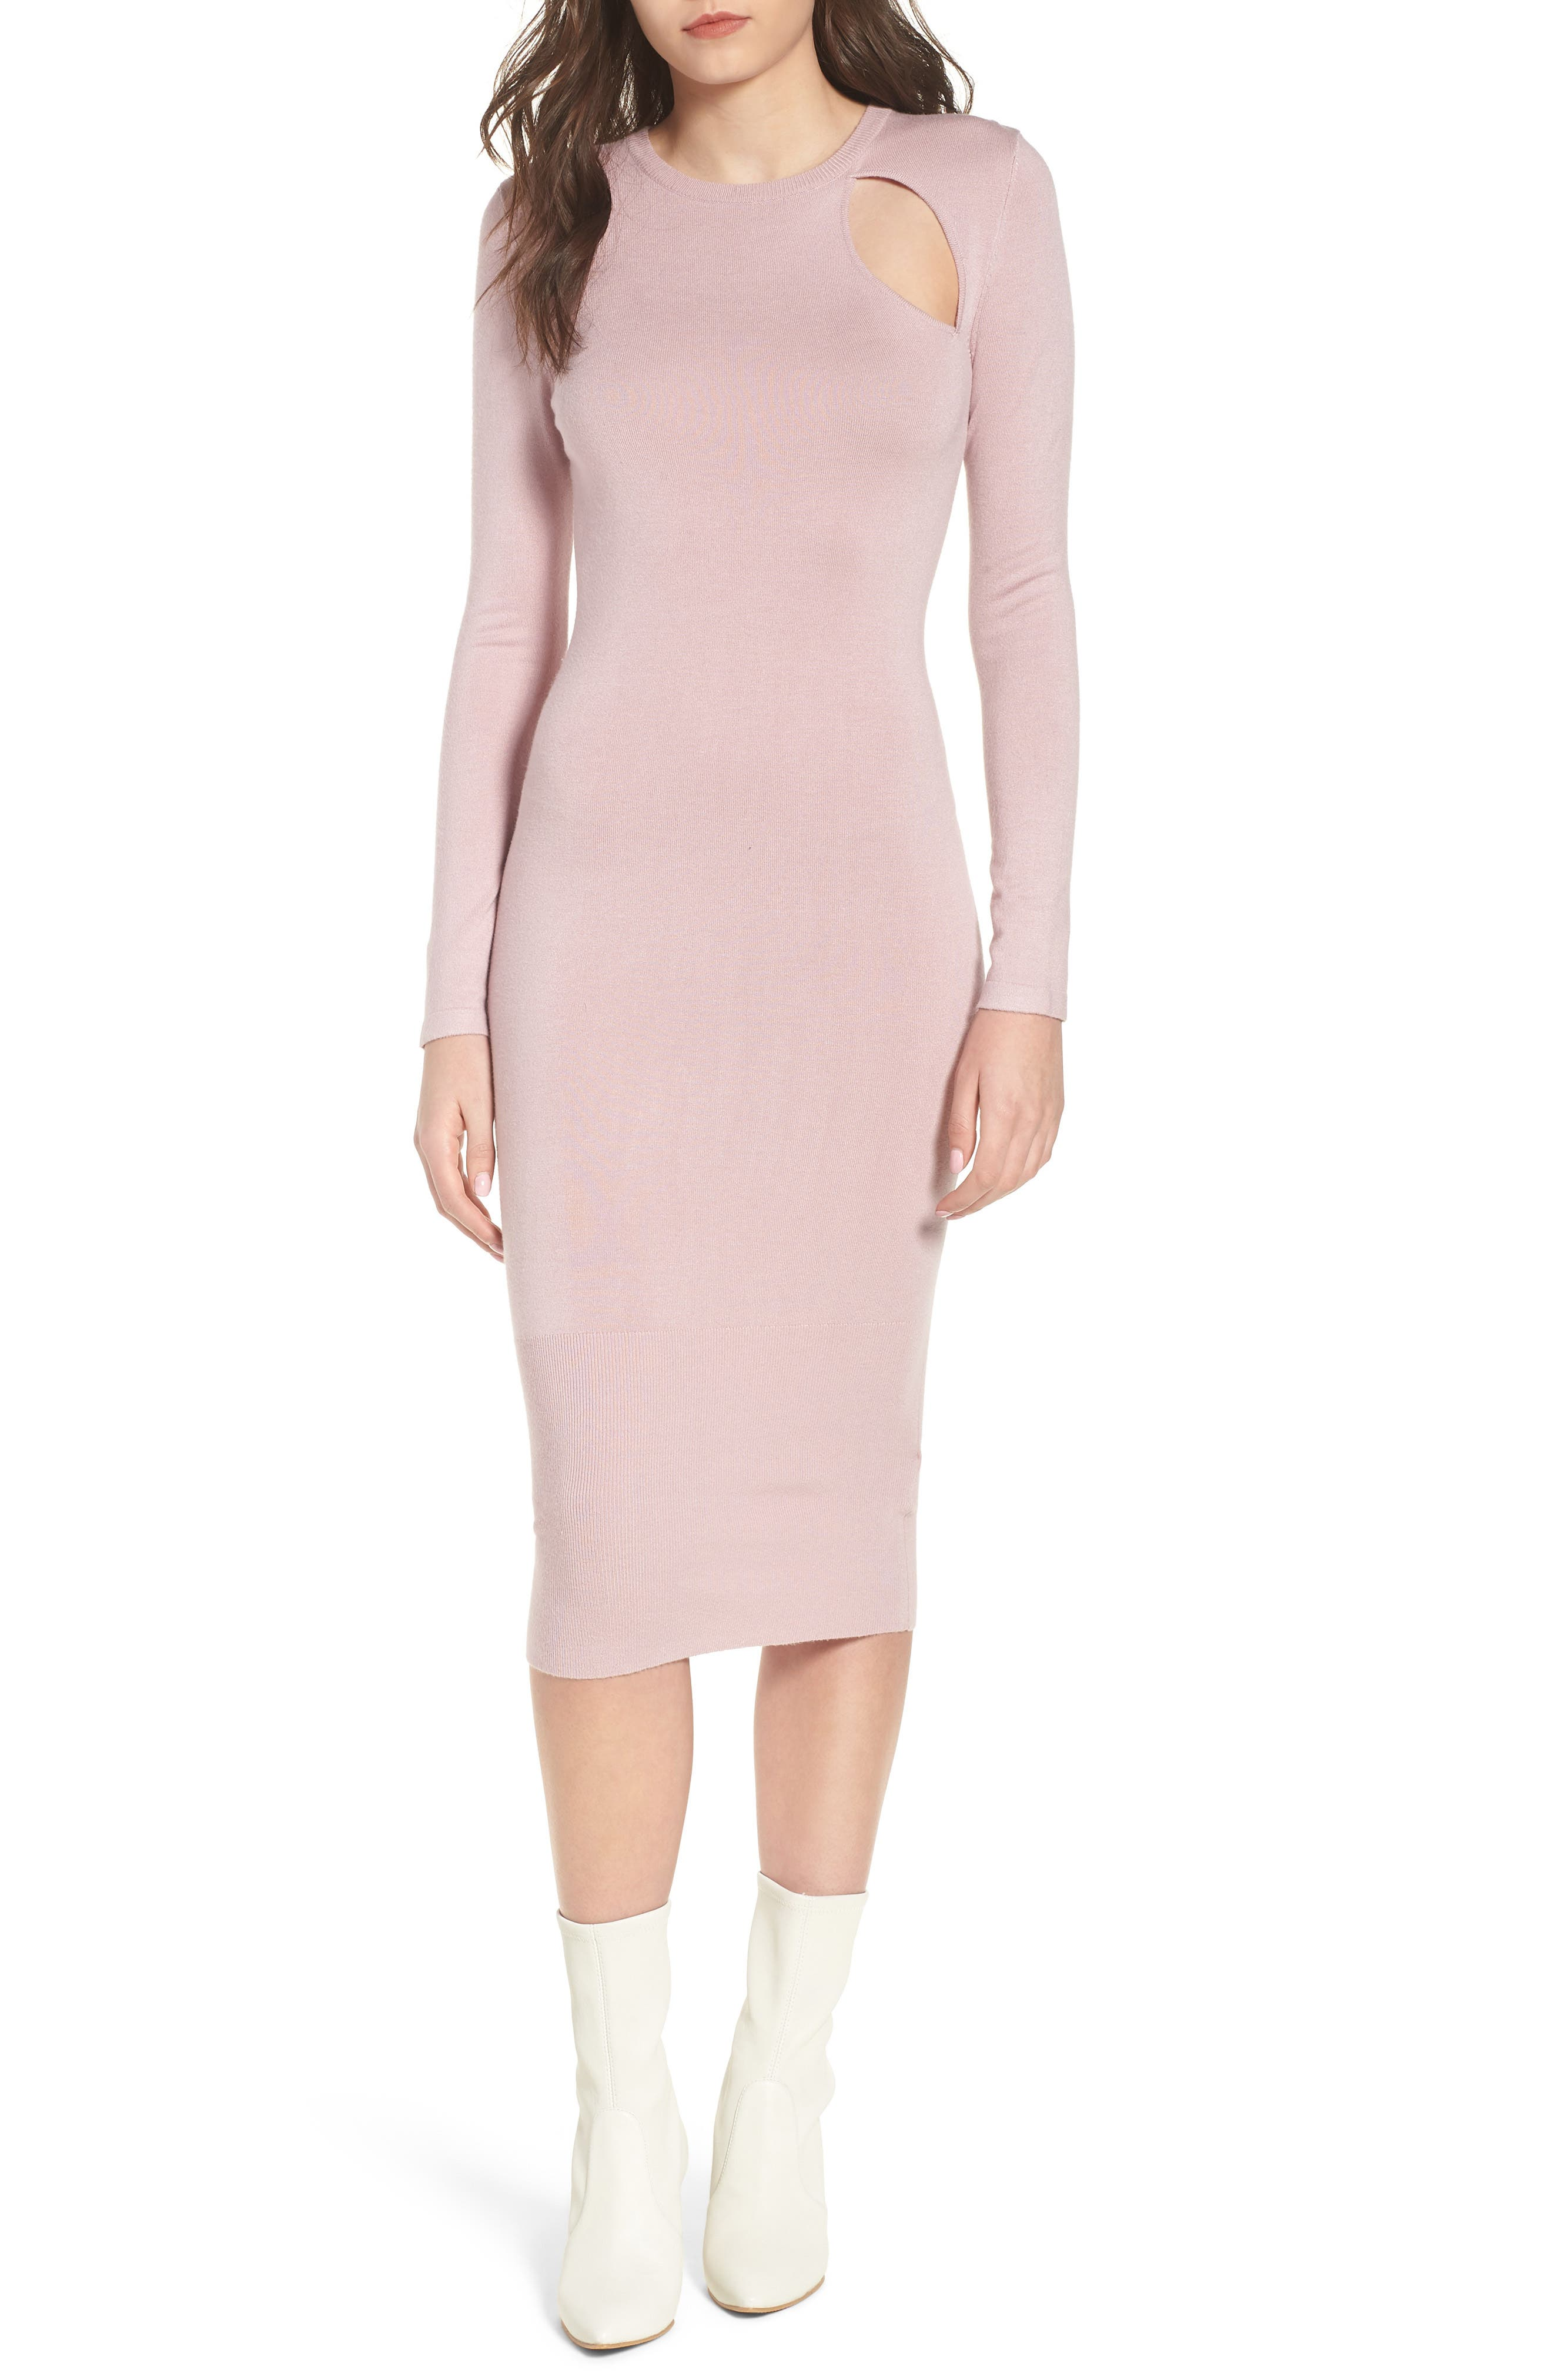 LOST INK Body-Con Midi Dress